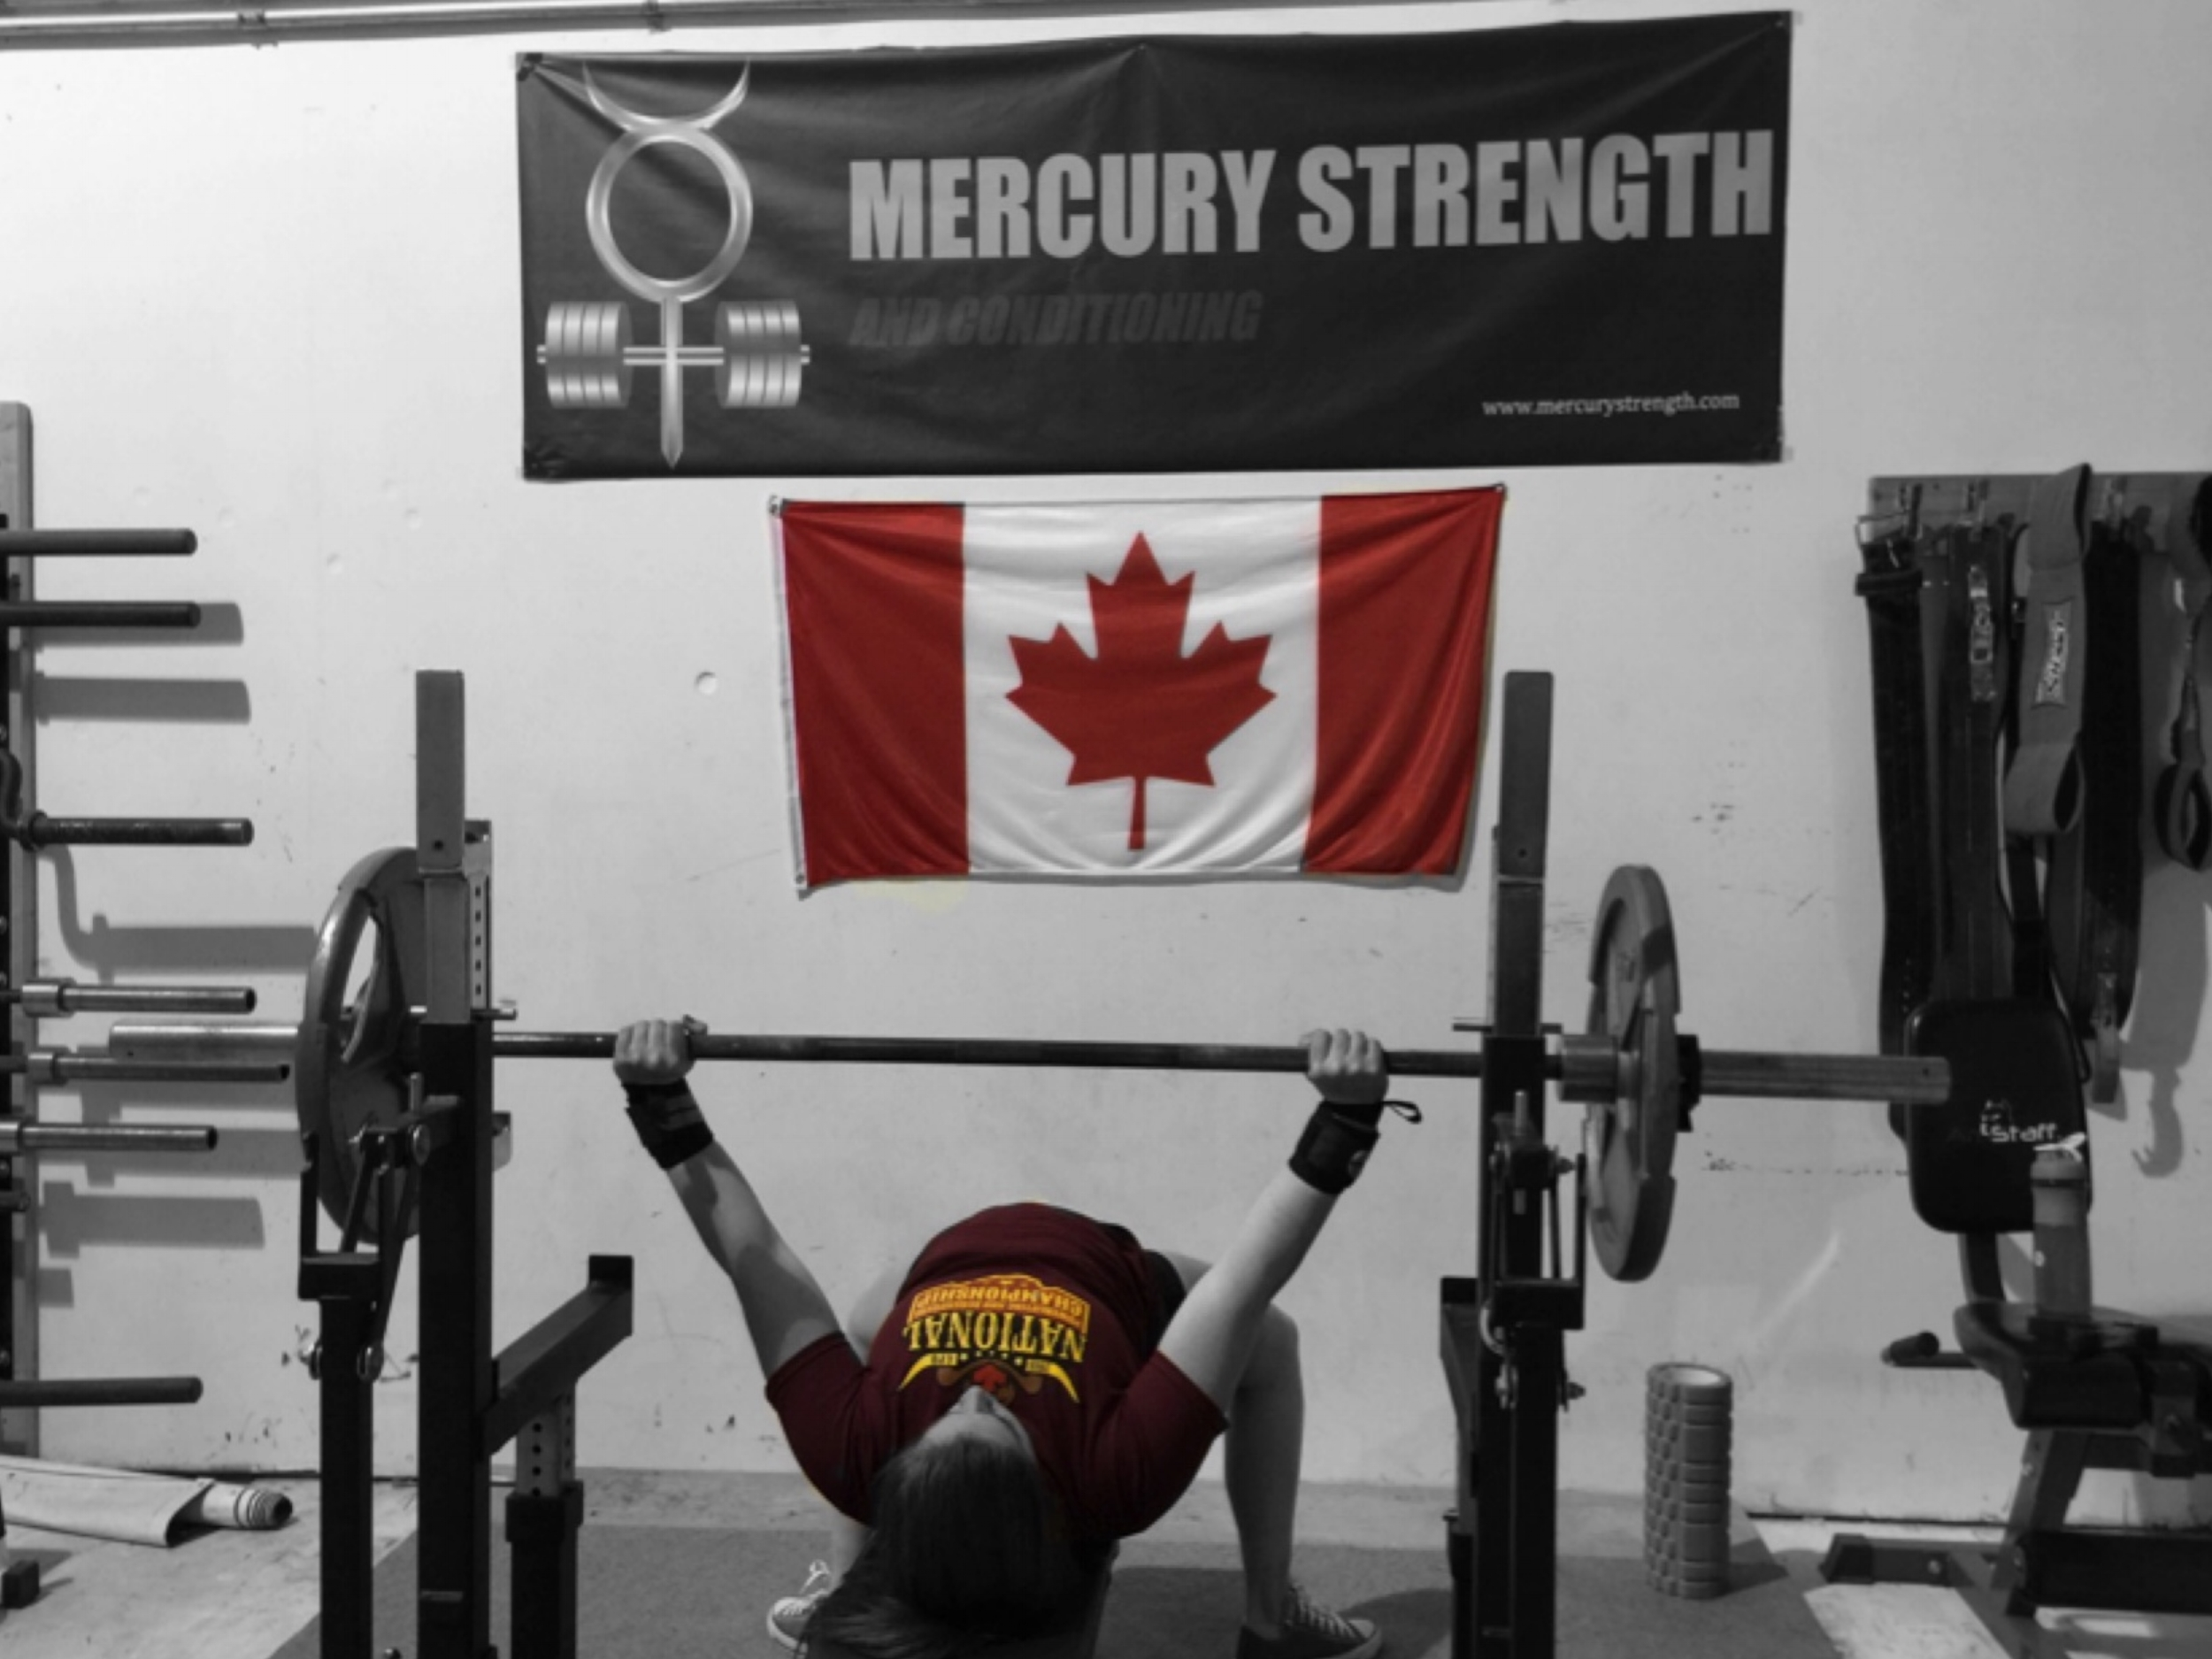 Learn how to powerlift. Prepare for meets. Get stronger for every day life.